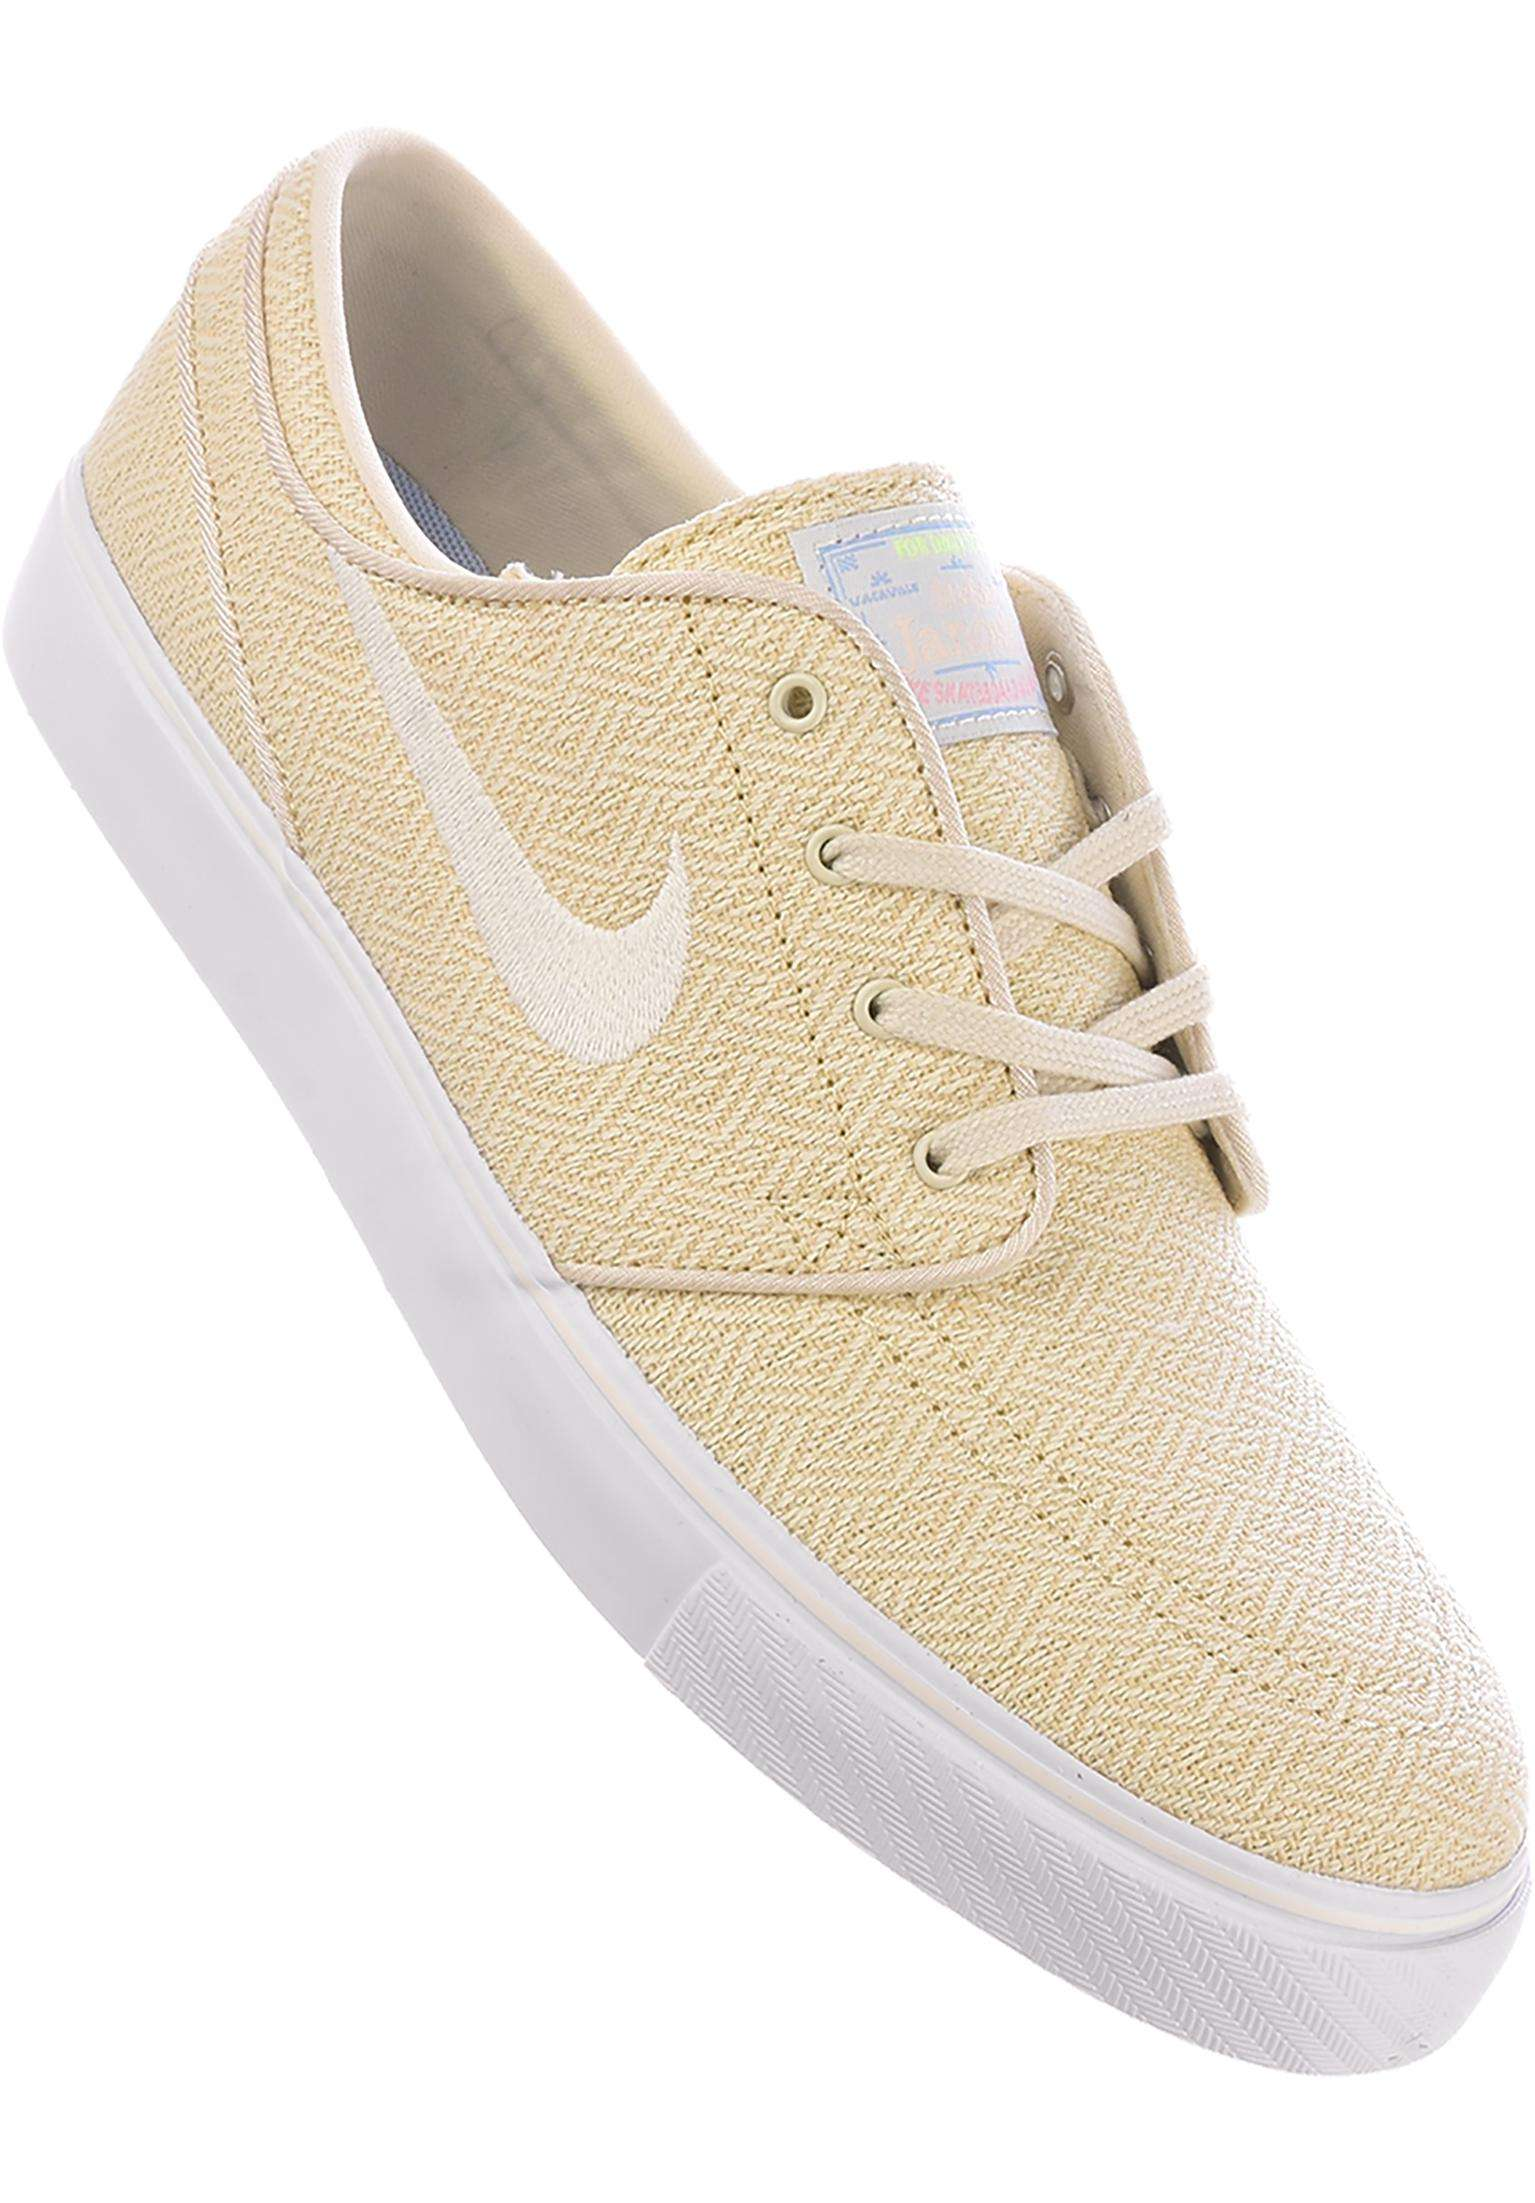 d0f2fedc7ac6 Zoom Stefan Janoski CNVS Nike SB All Shoes in fossil-sail-white for Men